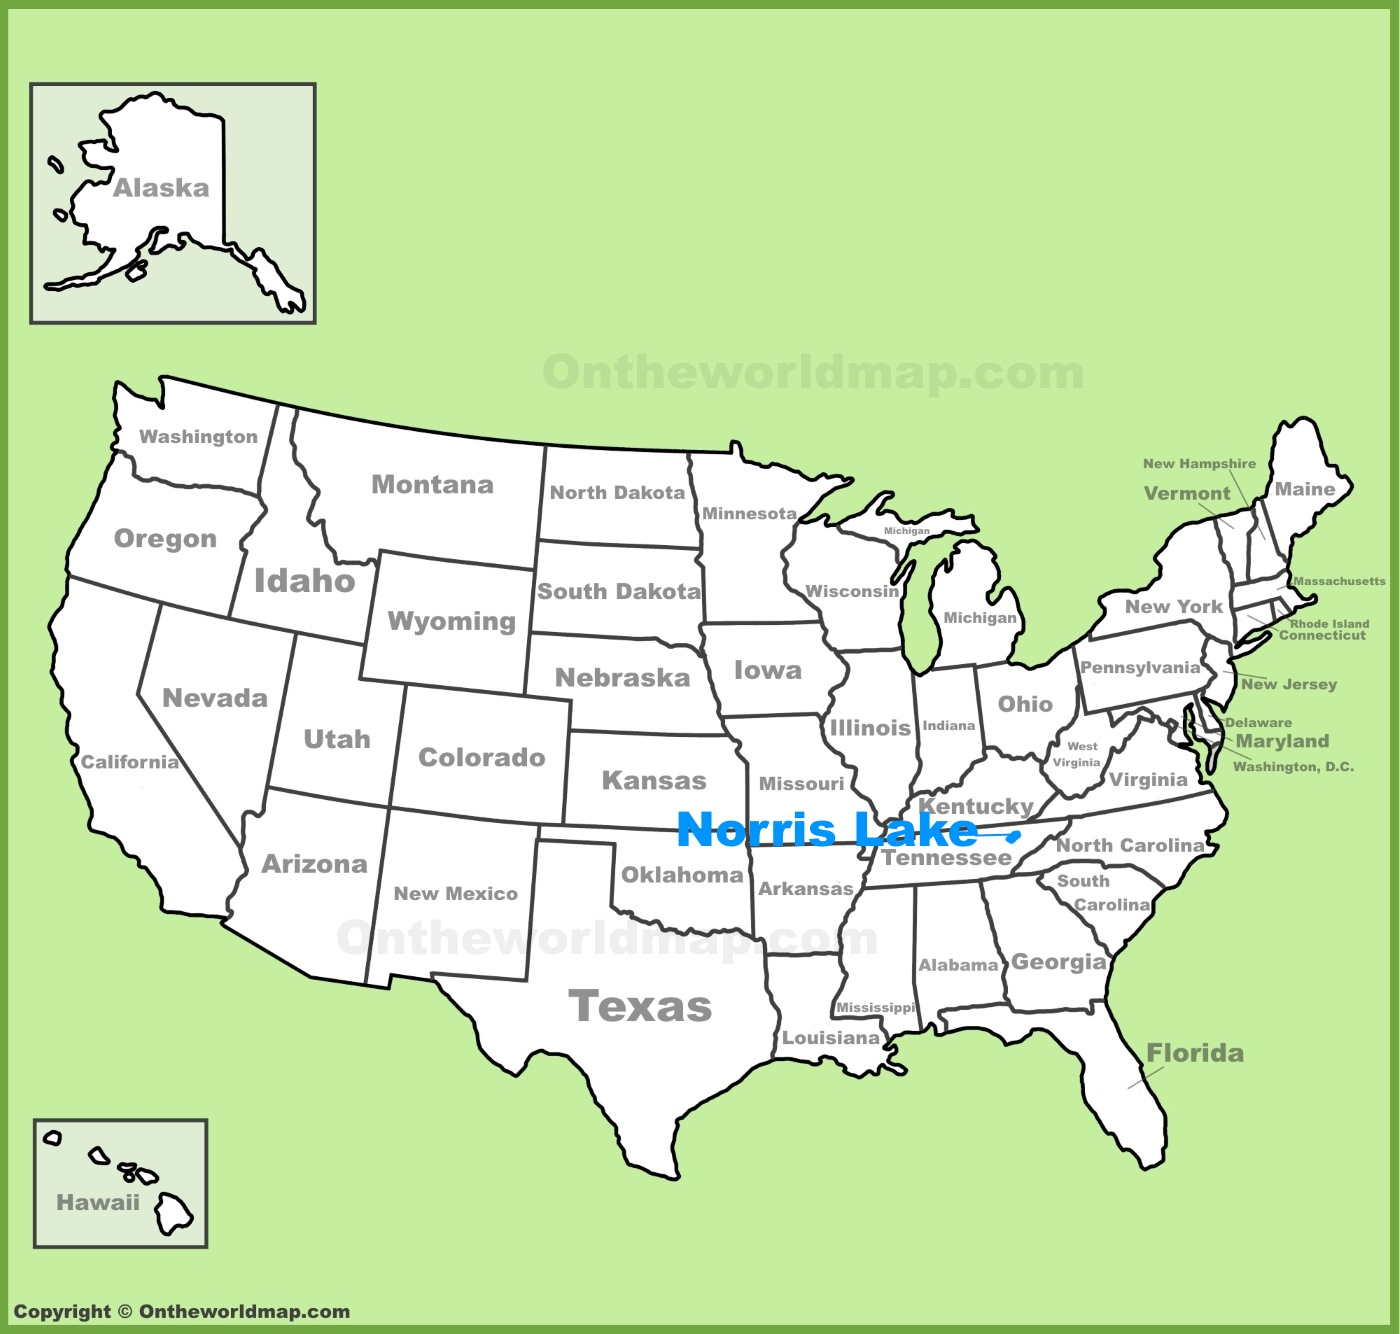 Norris Lake Tennessee Map.Norris Lake Location On The U S Map